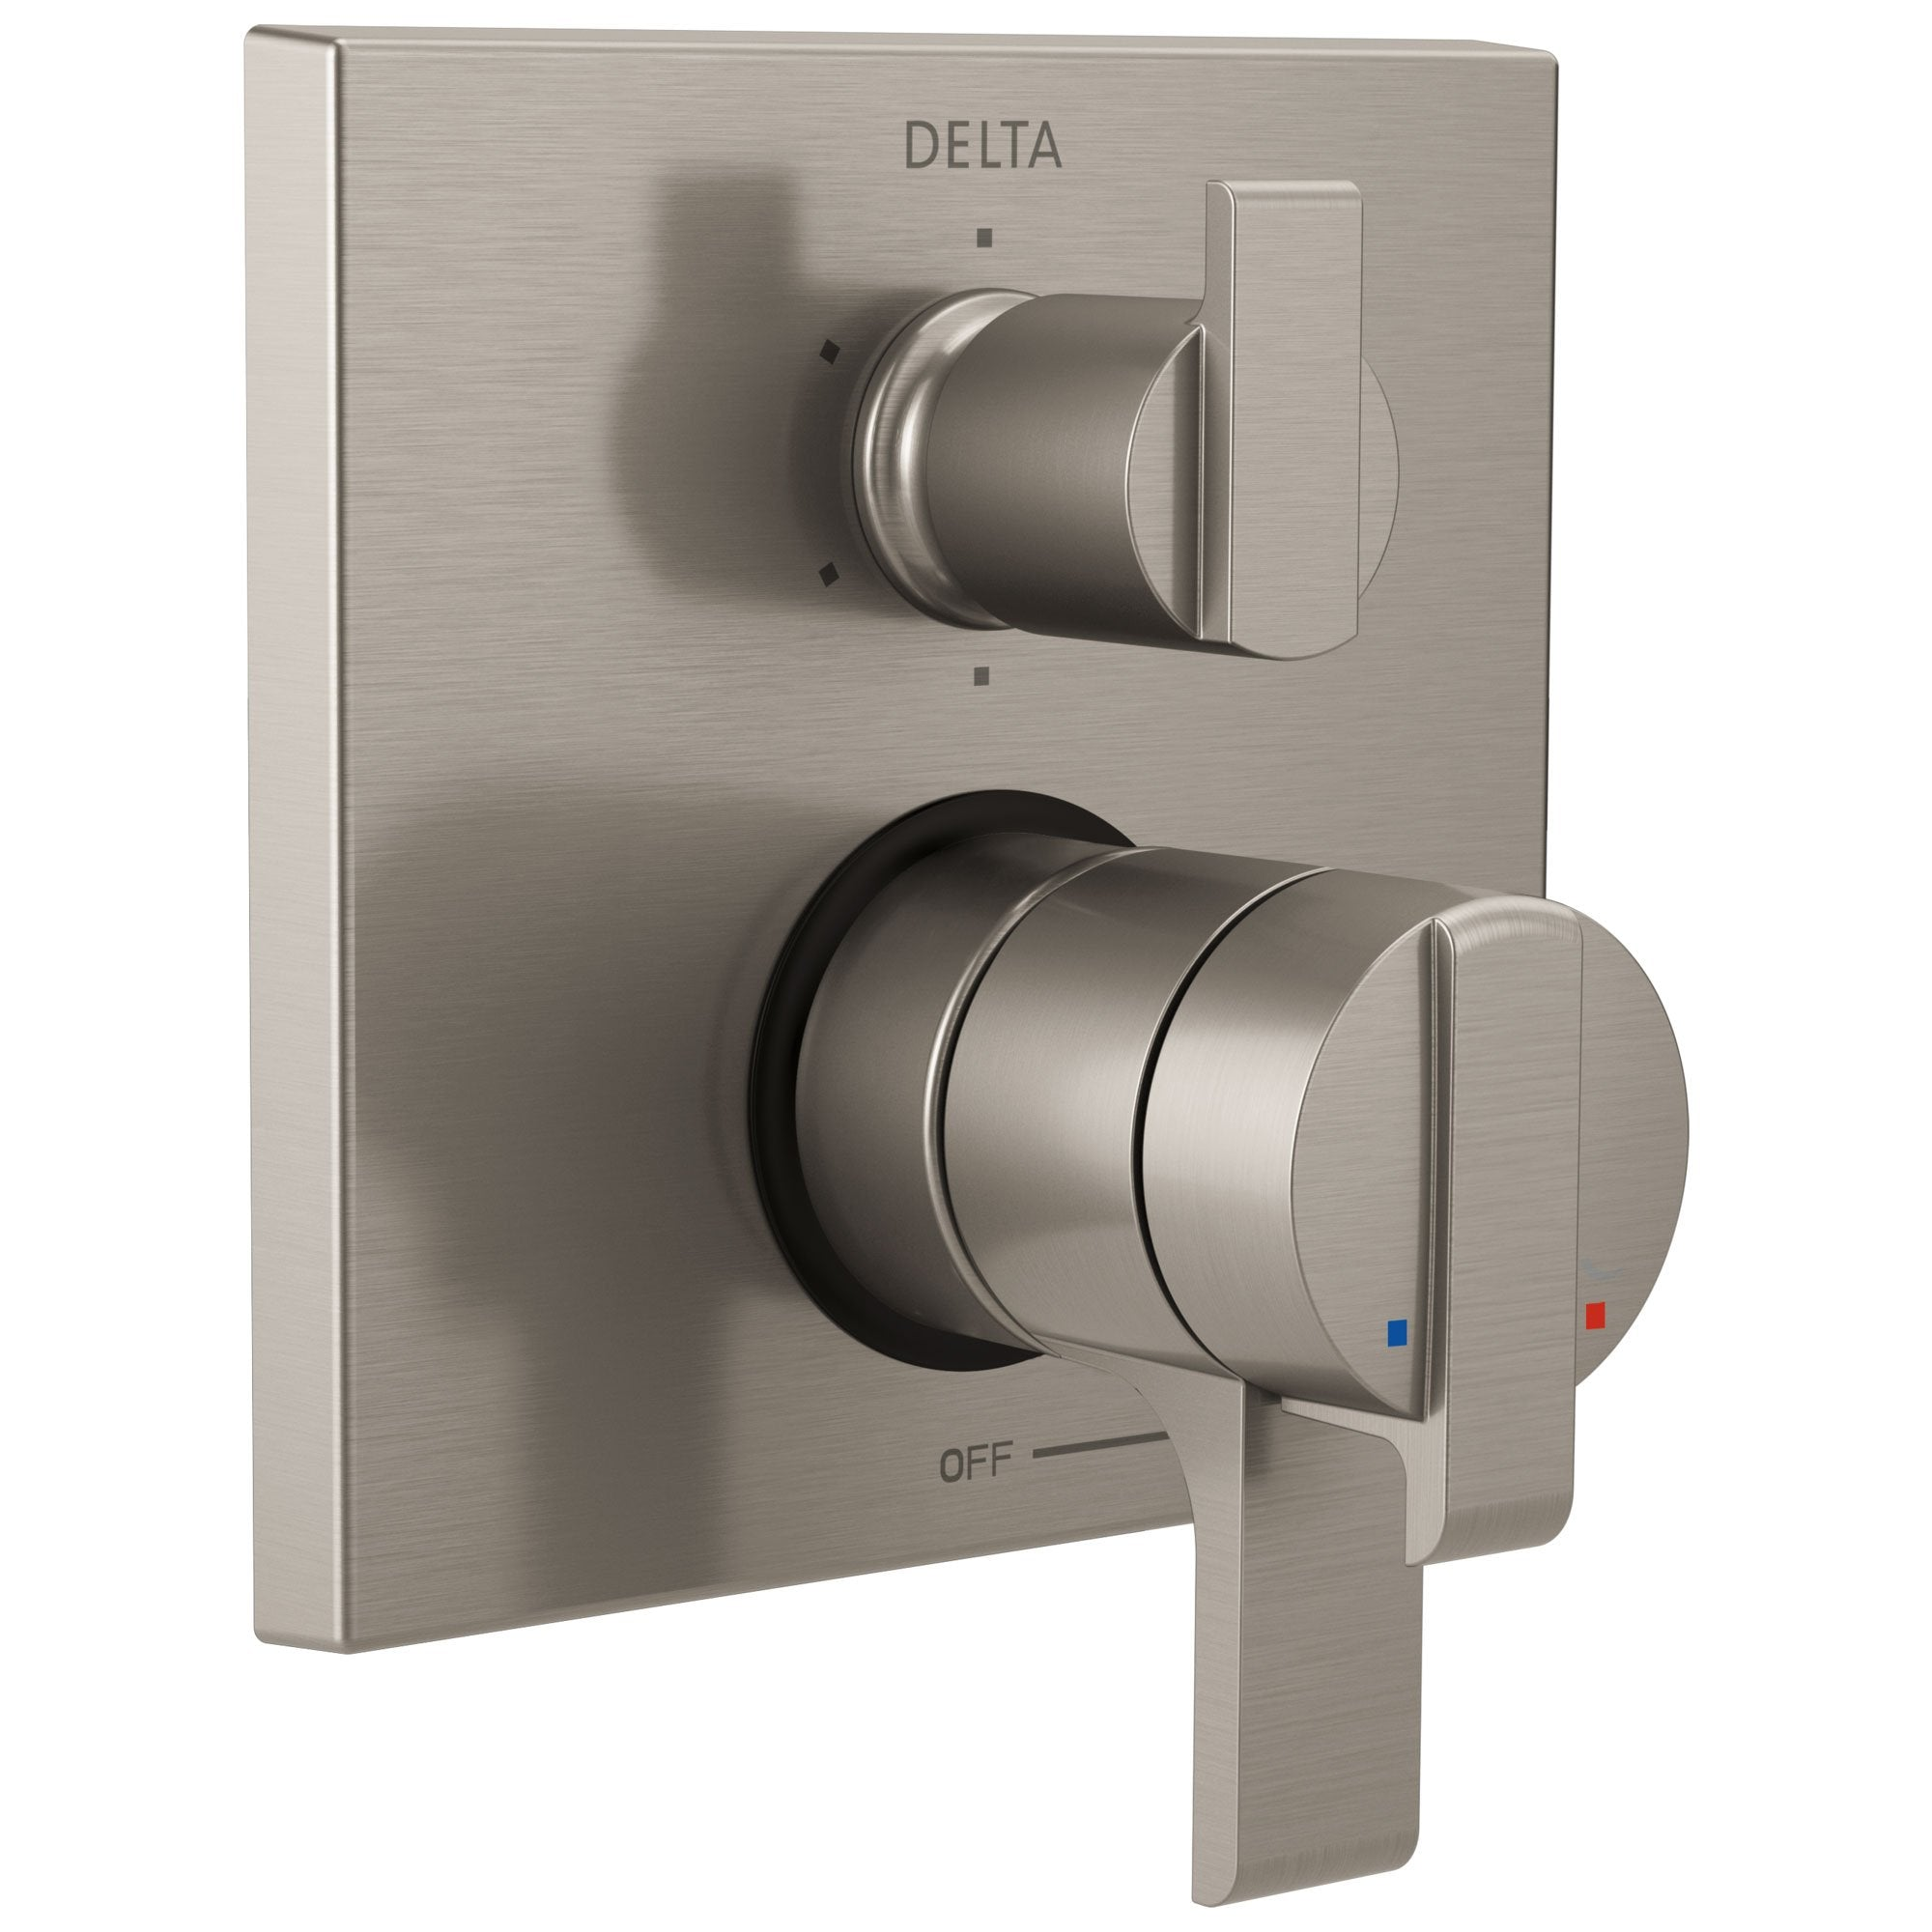 Delta Ara Stainless Steel Finish Modern Shower Faucet Control Handle with 6-Setting Integrated Diverter Includes Trim Kit and Rough-in Valve with Stops D2149V